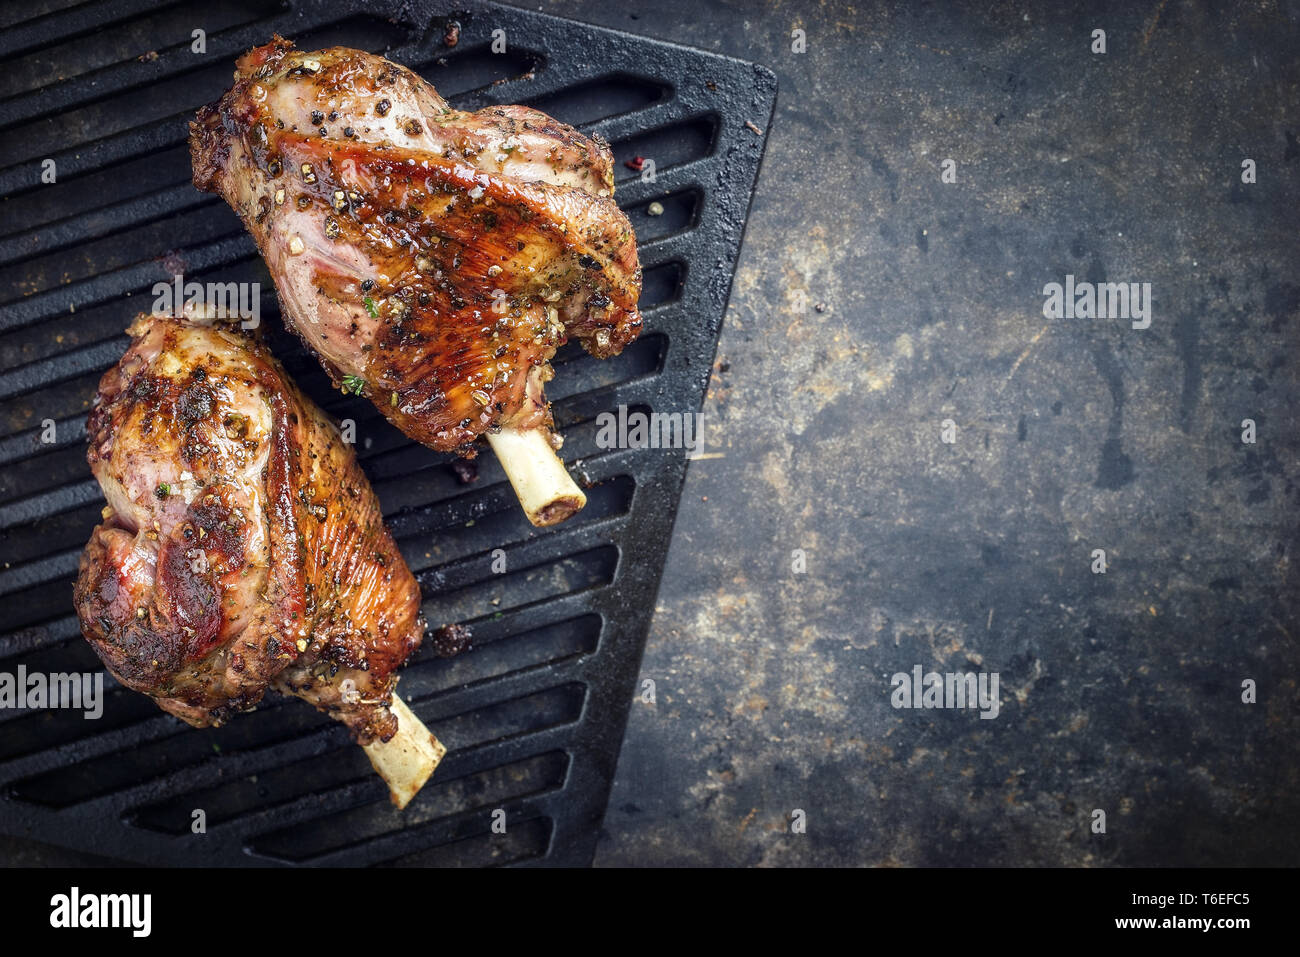 Two Barbecue Leg of Lamb as top view on cast iron grillage - Stock Image